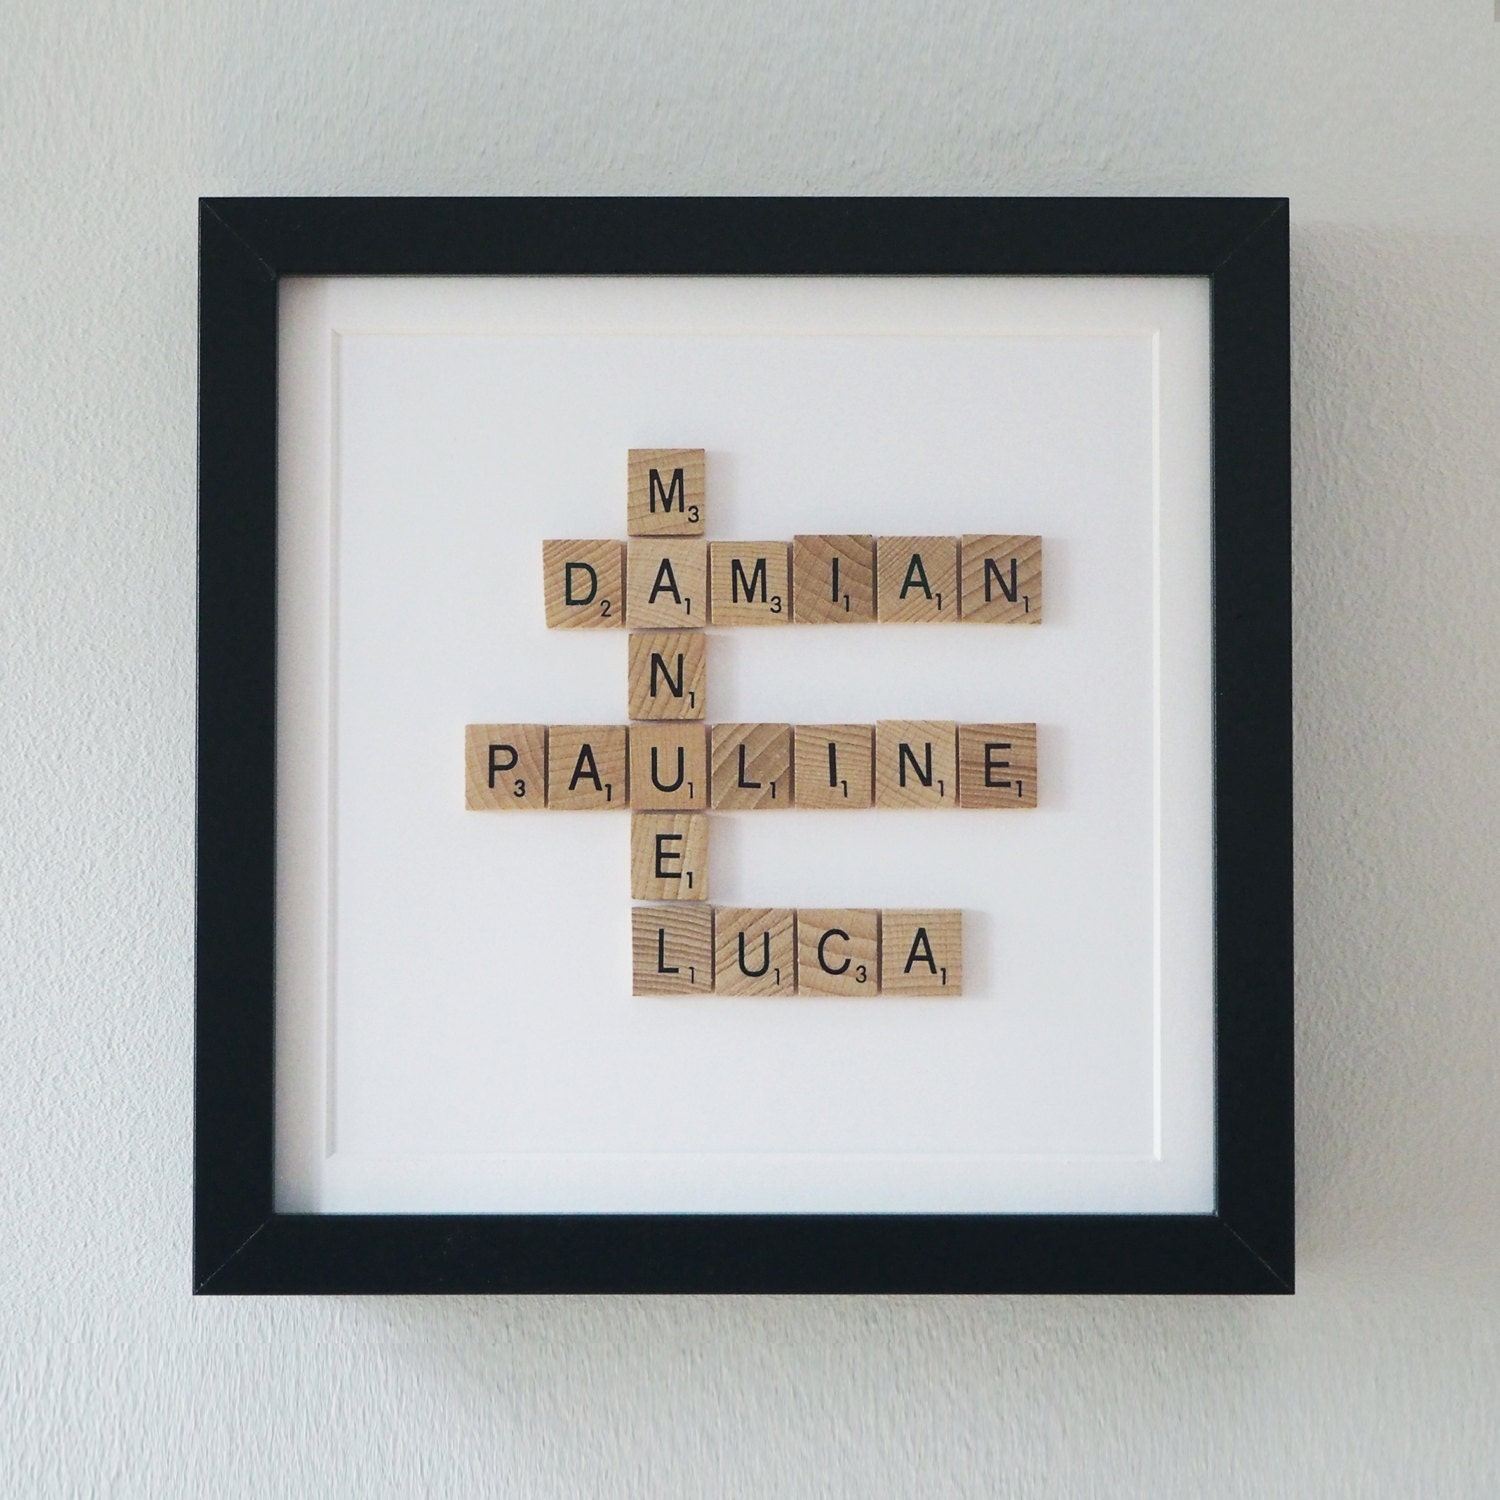 Wood Wedding Gift Ideas: Framed Scrabble Family Tree 5th Year Anniversary Gift Wooden